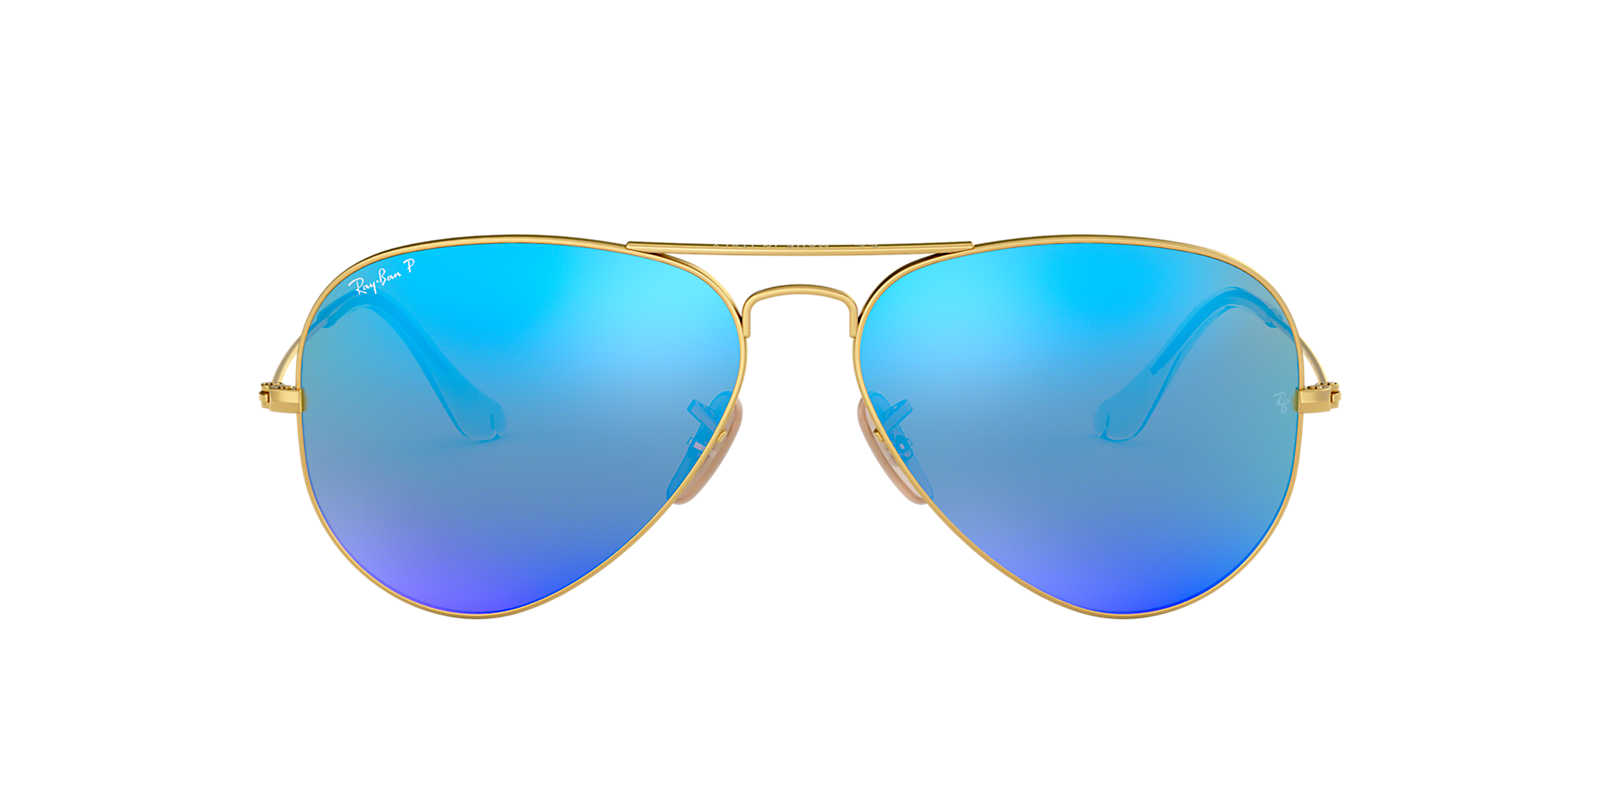 ray ban sunglasses blue aviator  Ray-Ban RB3025 58 ORIGINAL AVIATOR 58 Blue \u0026 Gold Matte Polarized ...